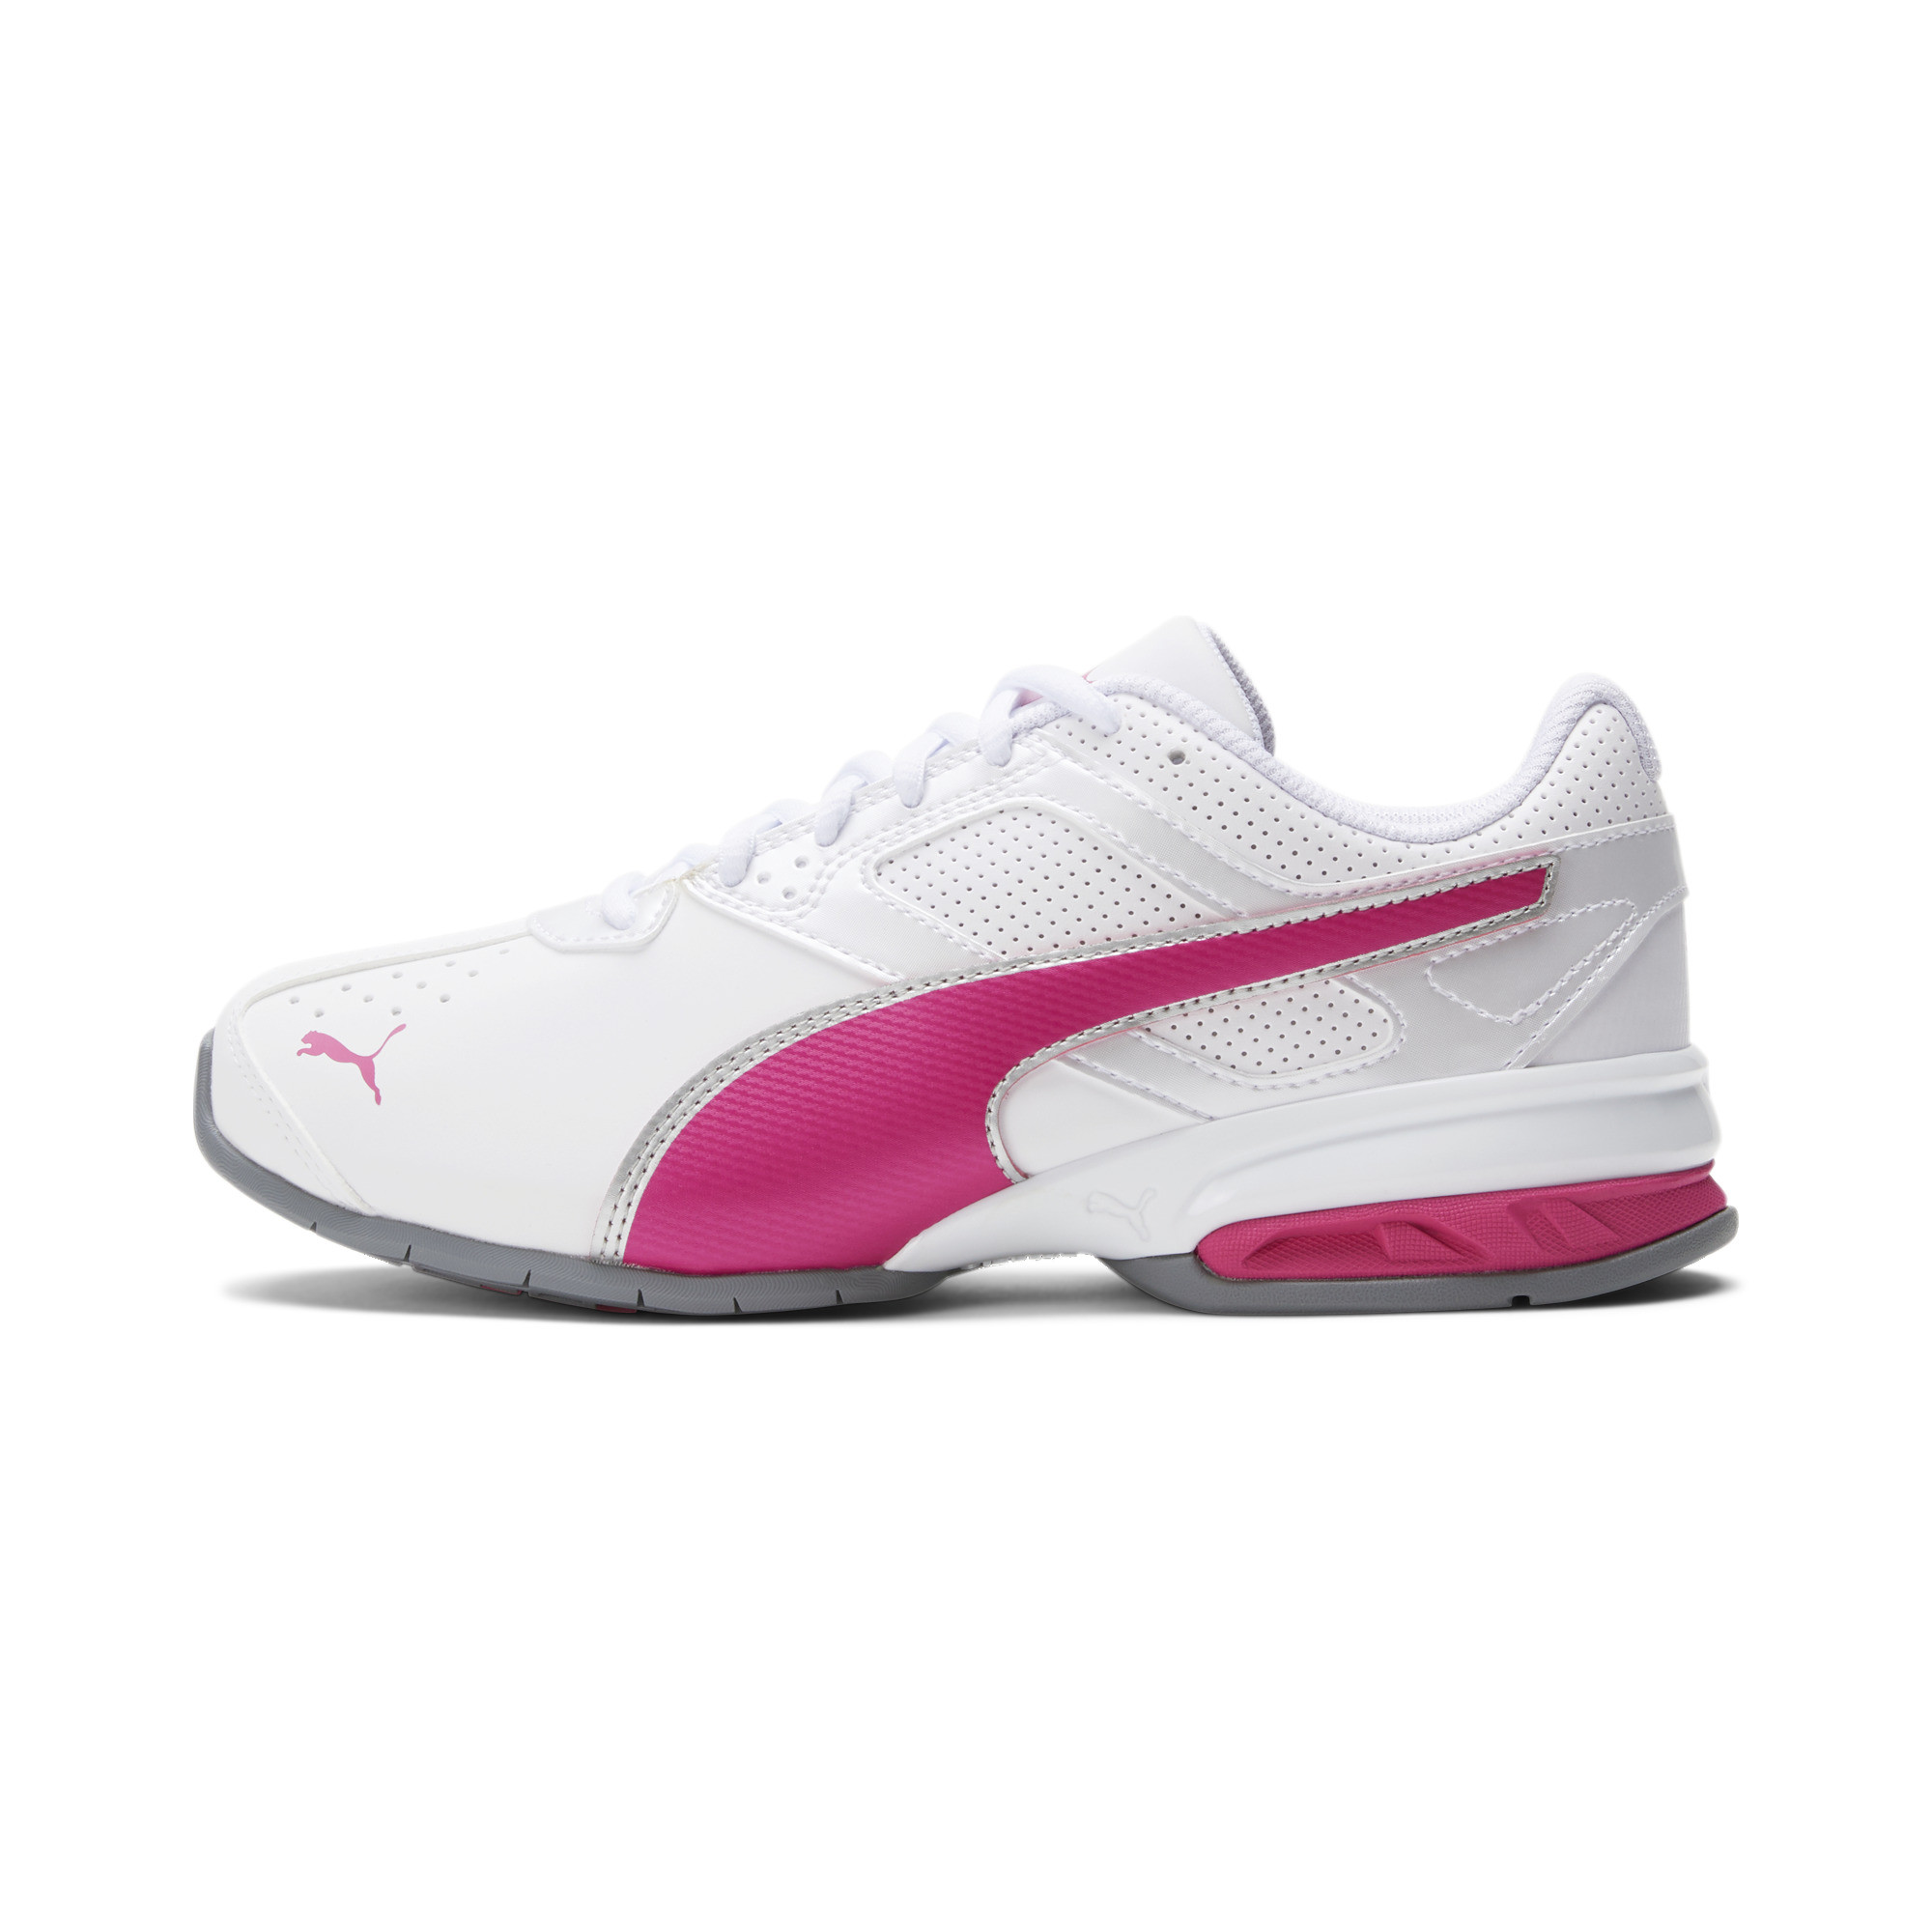 PUMA-Tazon-6-FM-Women-039-s-Sneakers-Women-Shoe-Running thumbnail 9